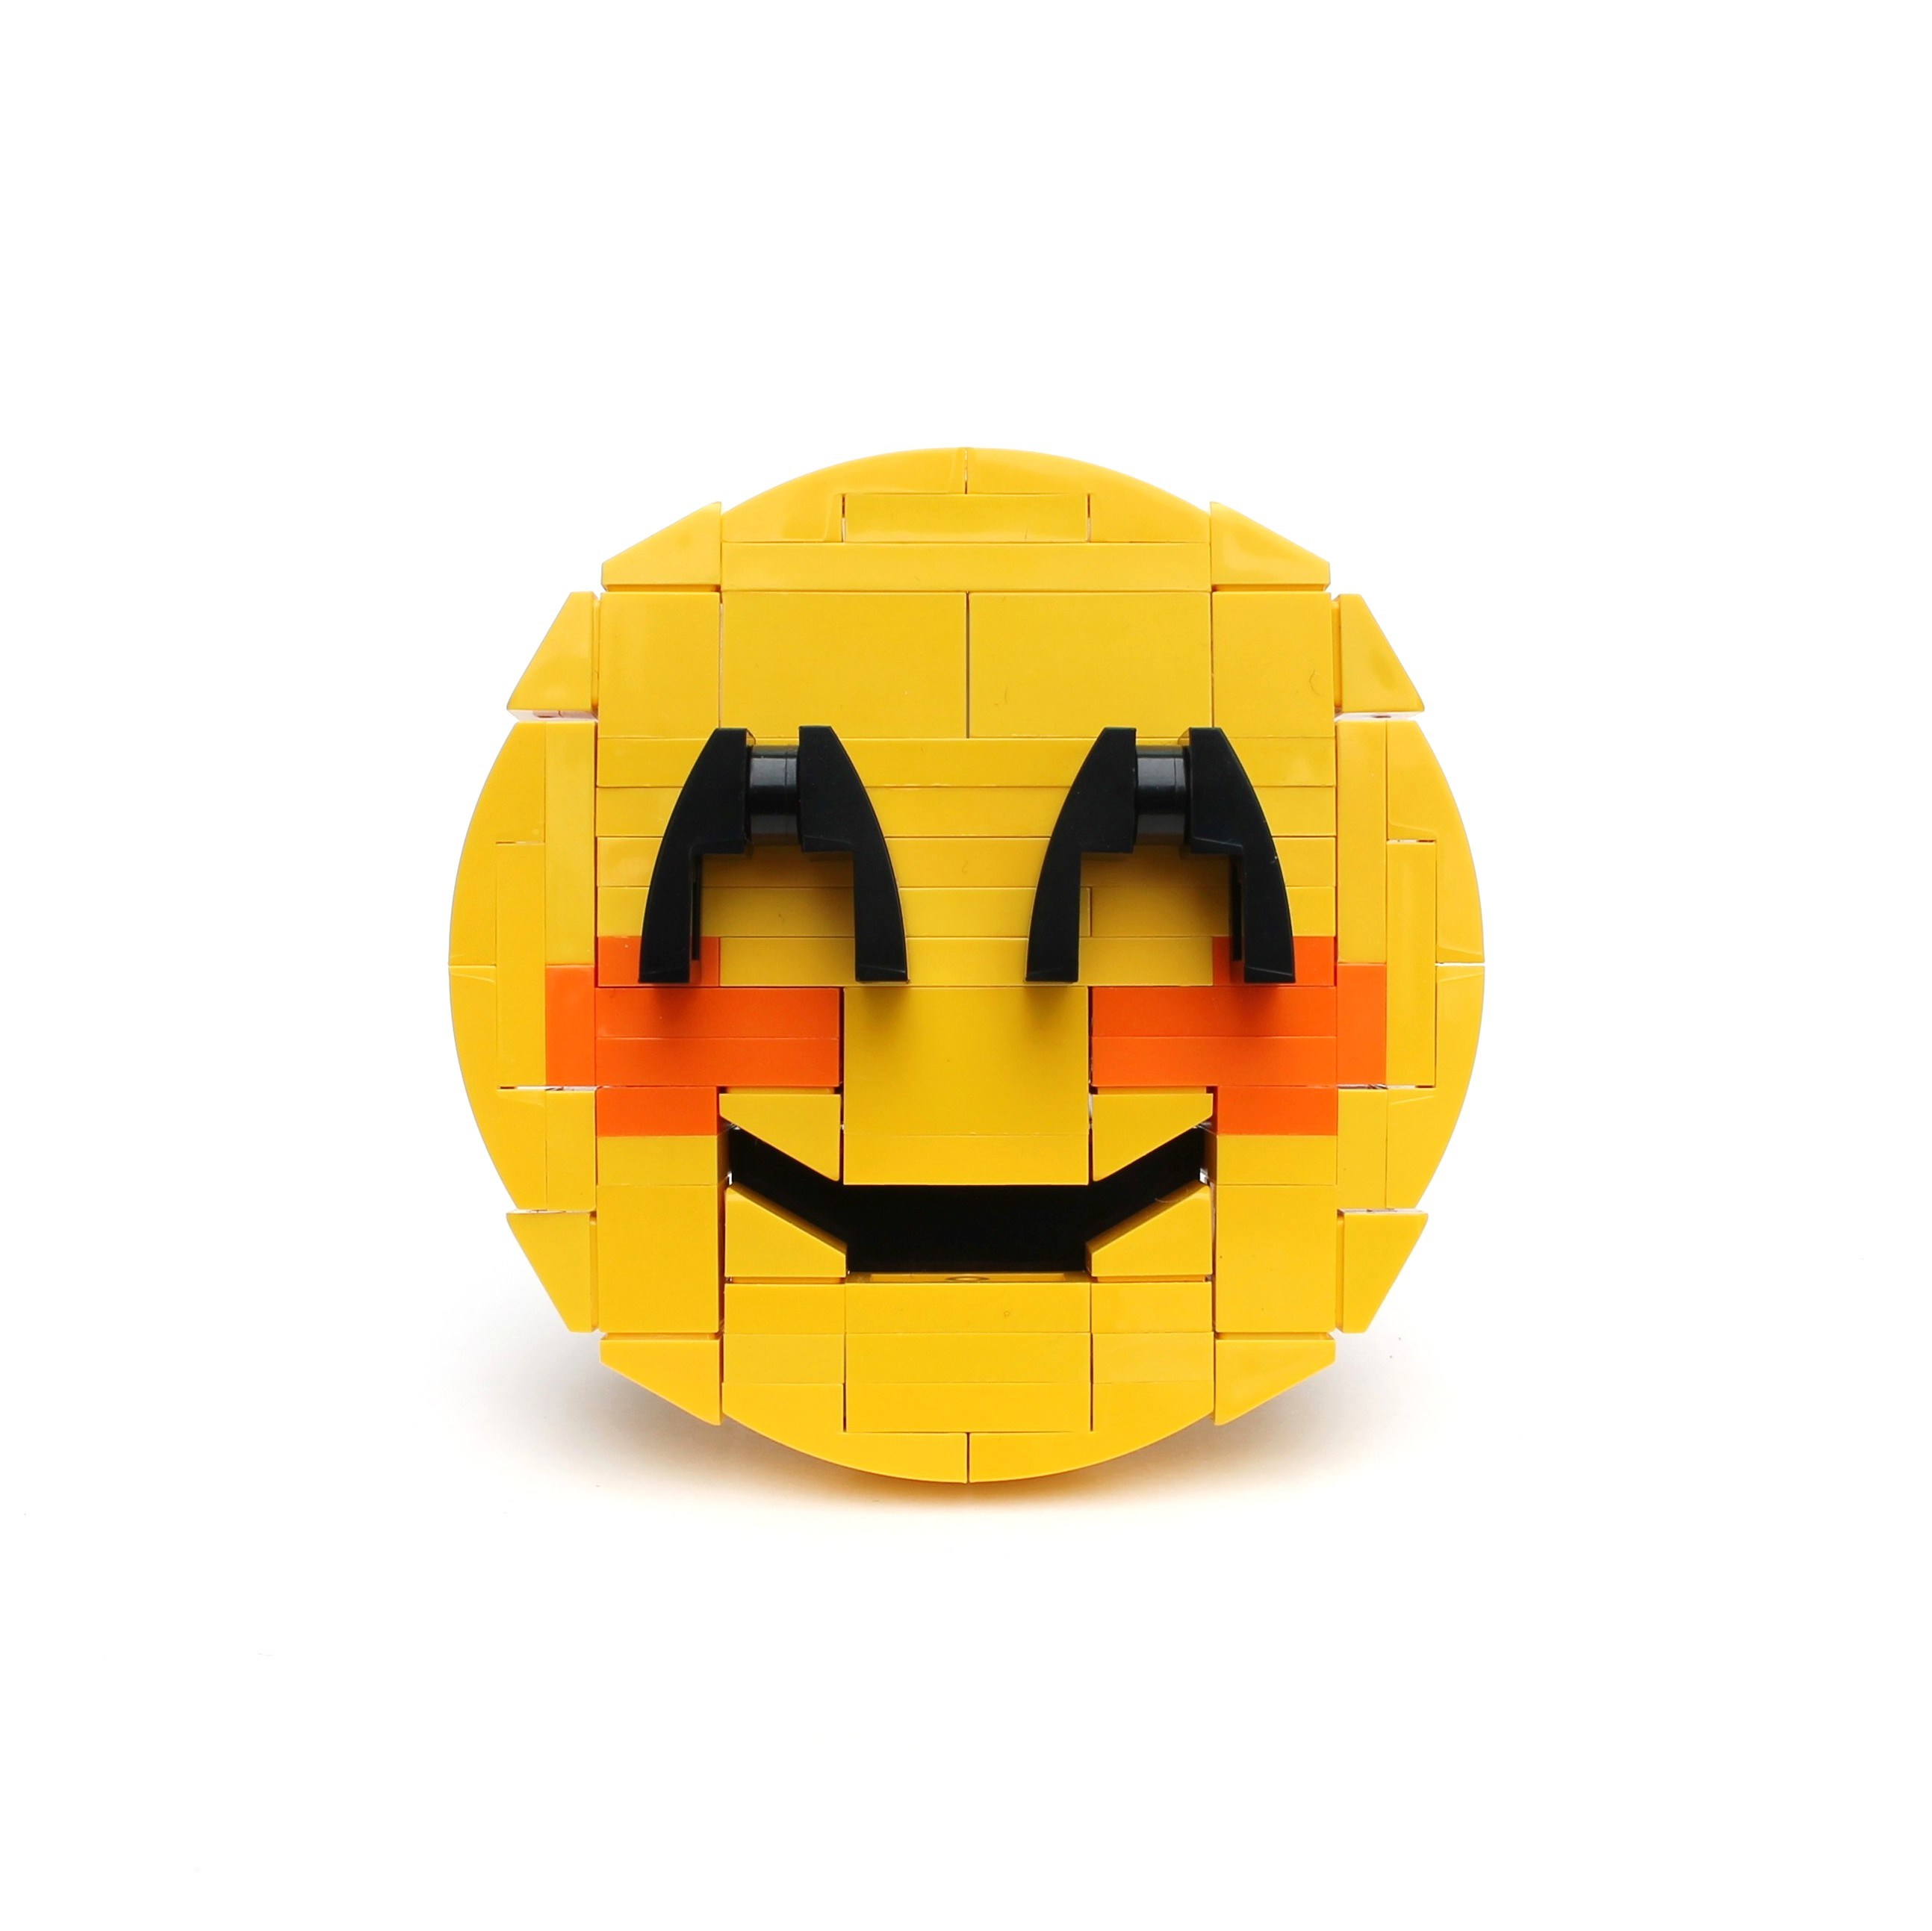 Brick-moji - Smiling face with smiling eyes